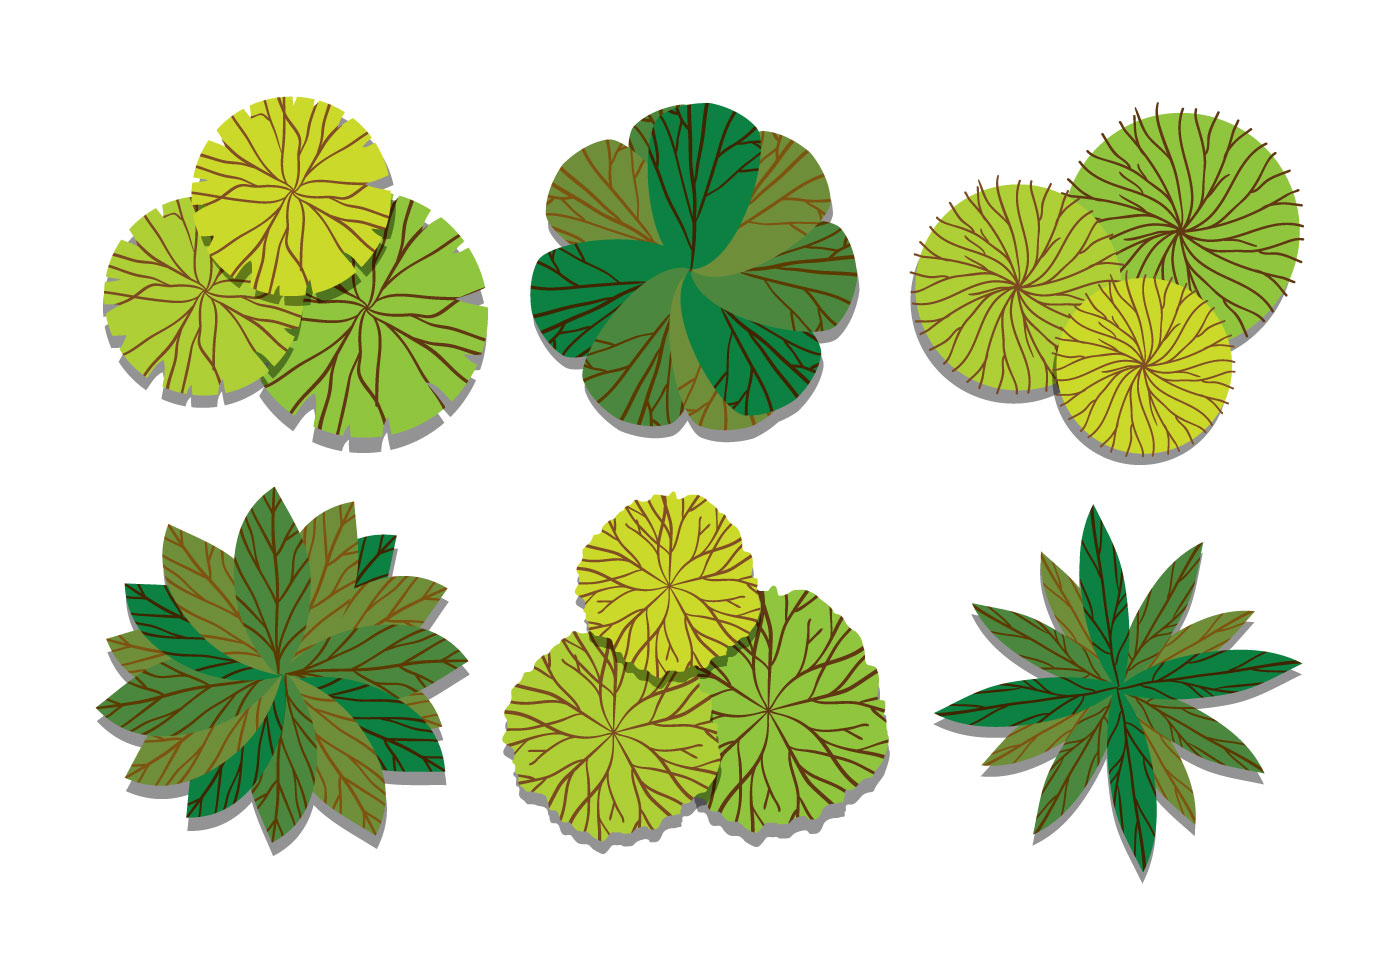 Plant Top View Vector in Group - Download Free Vector Art ...